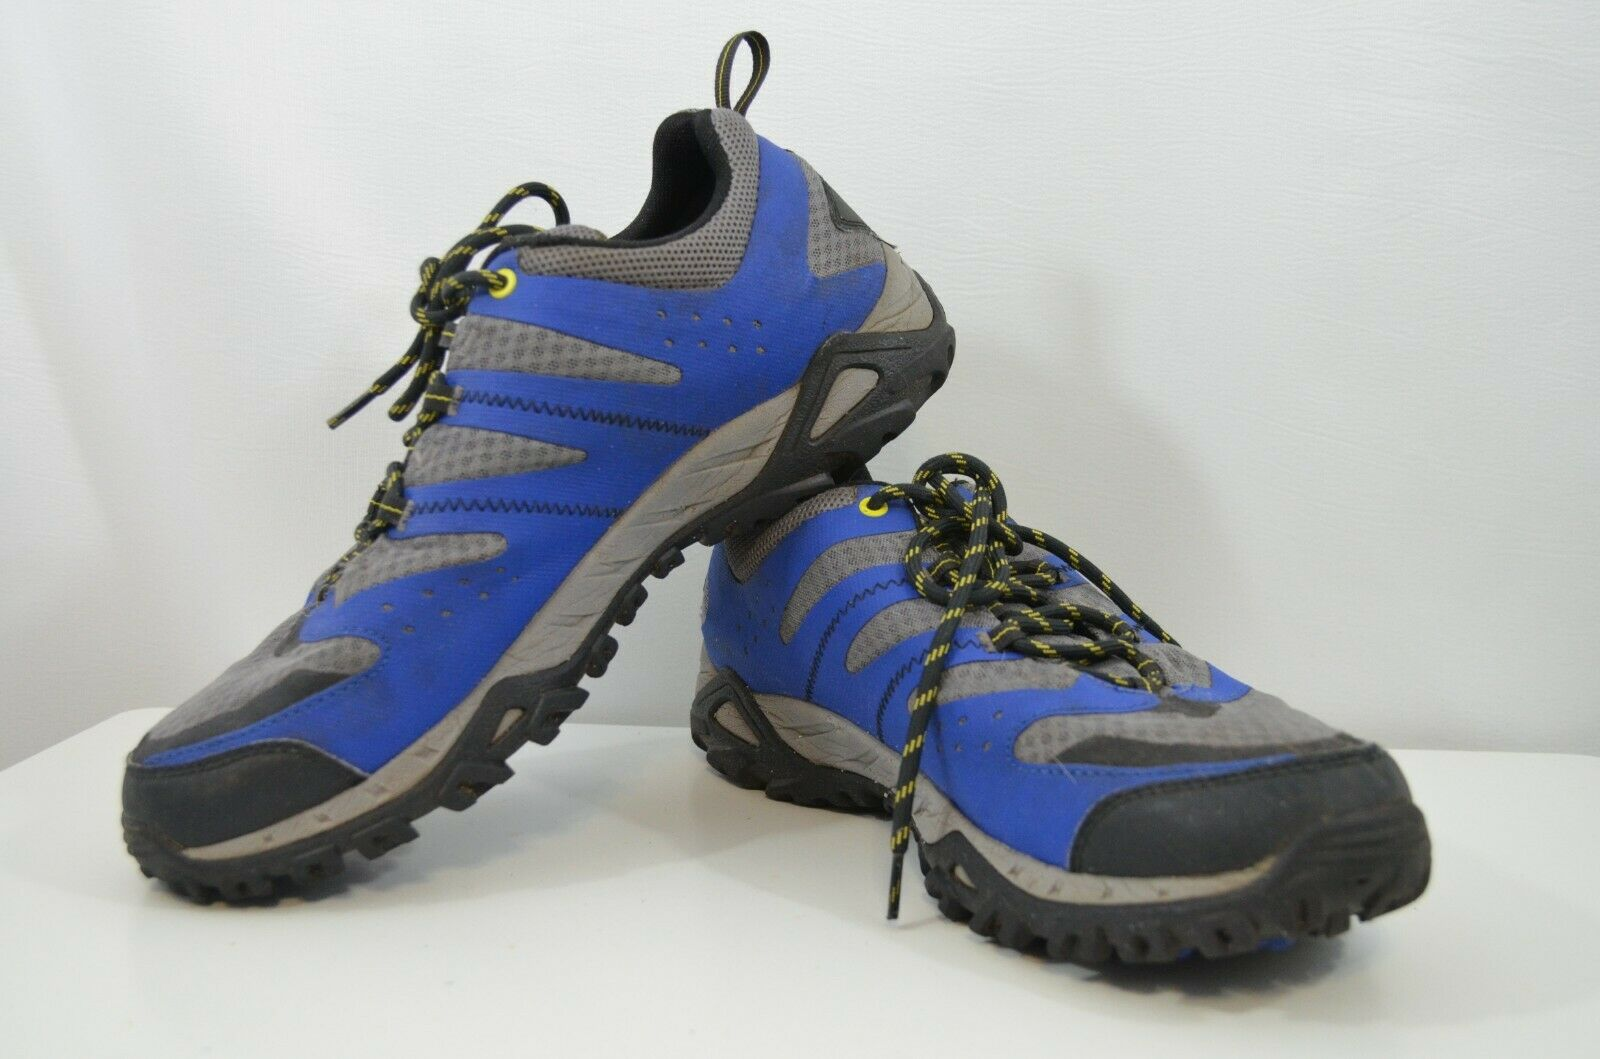 COLUMBIA Mens Omni-Grip Techlite Hiking shoes grey and bluee SZ 11.5